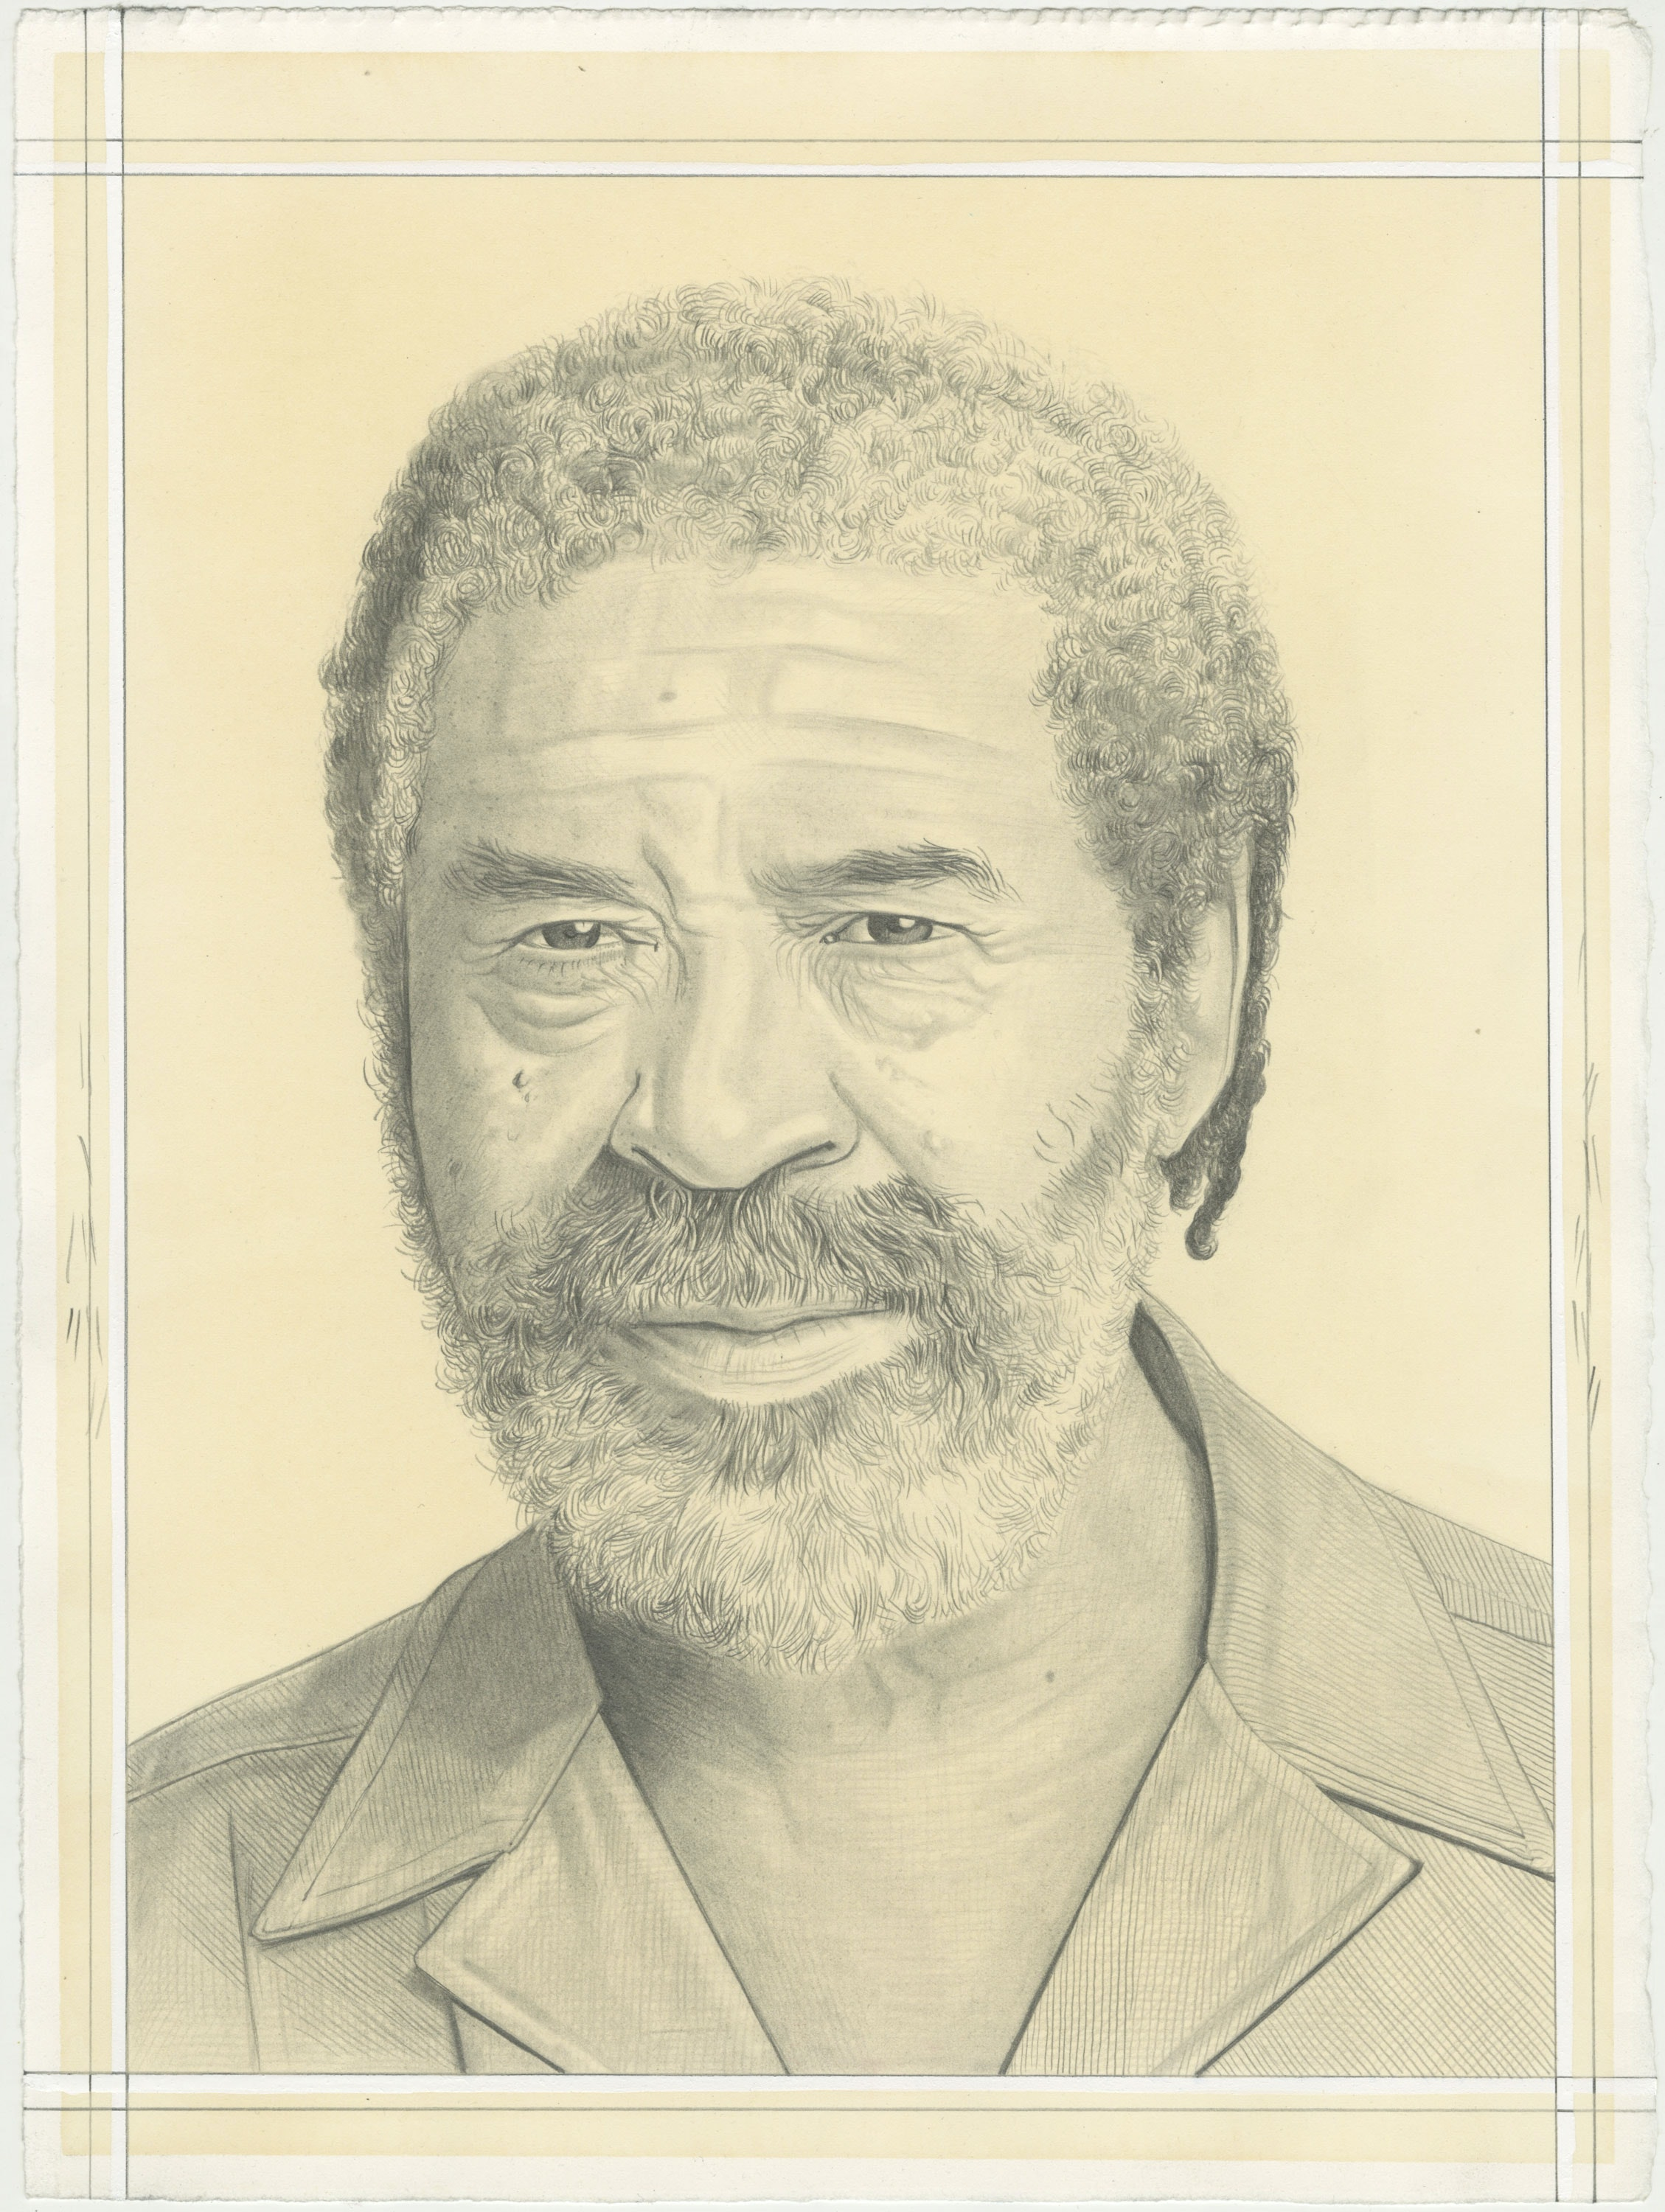 McArthur Binion, pencil on paper by Phong H. Bui. Based on a photo by Pasquate Abbattista.